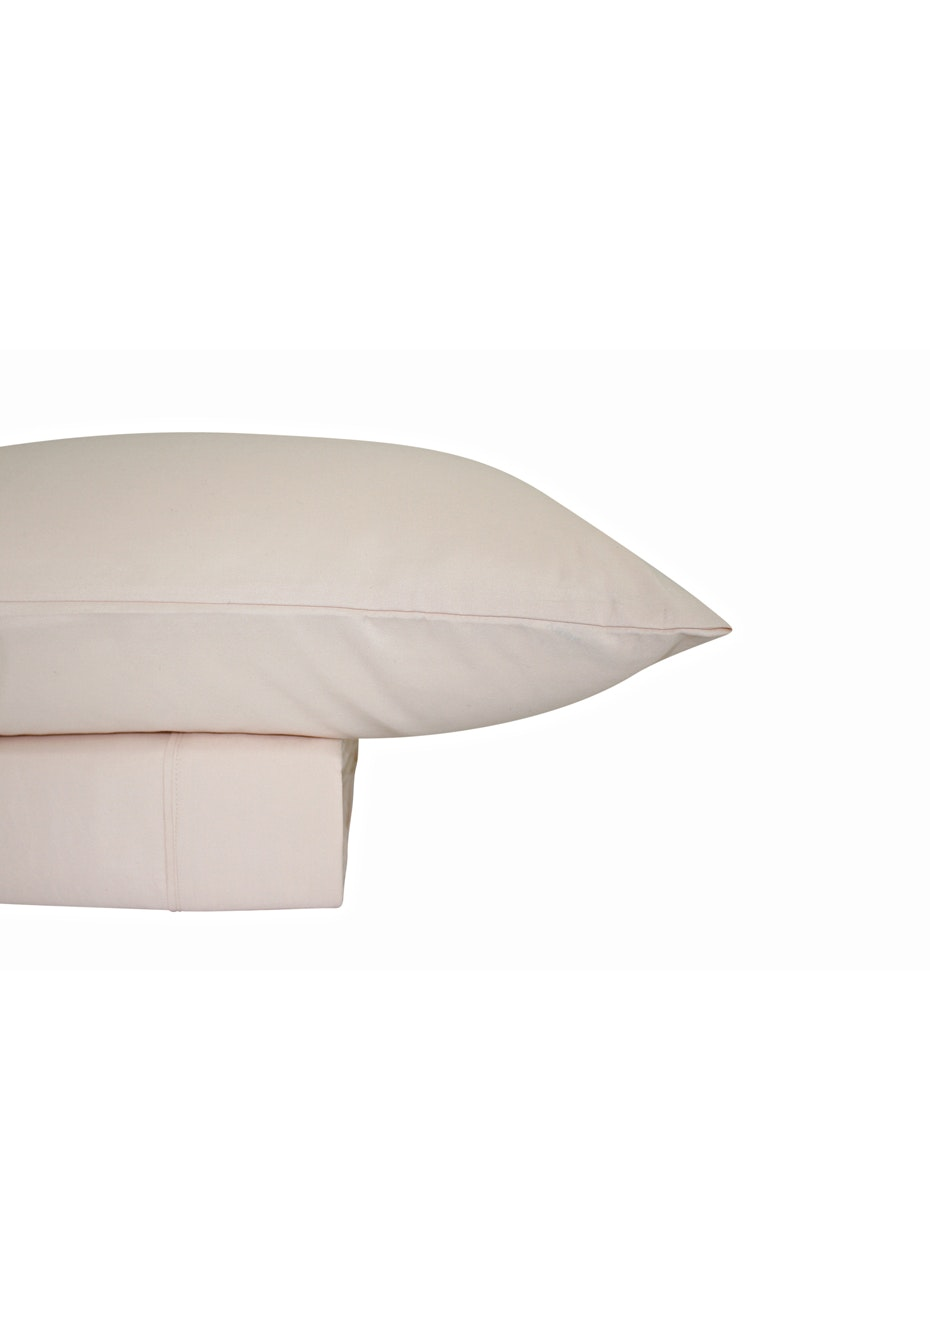 Thermal Flannel Sheet Sets - Sand - King Bed